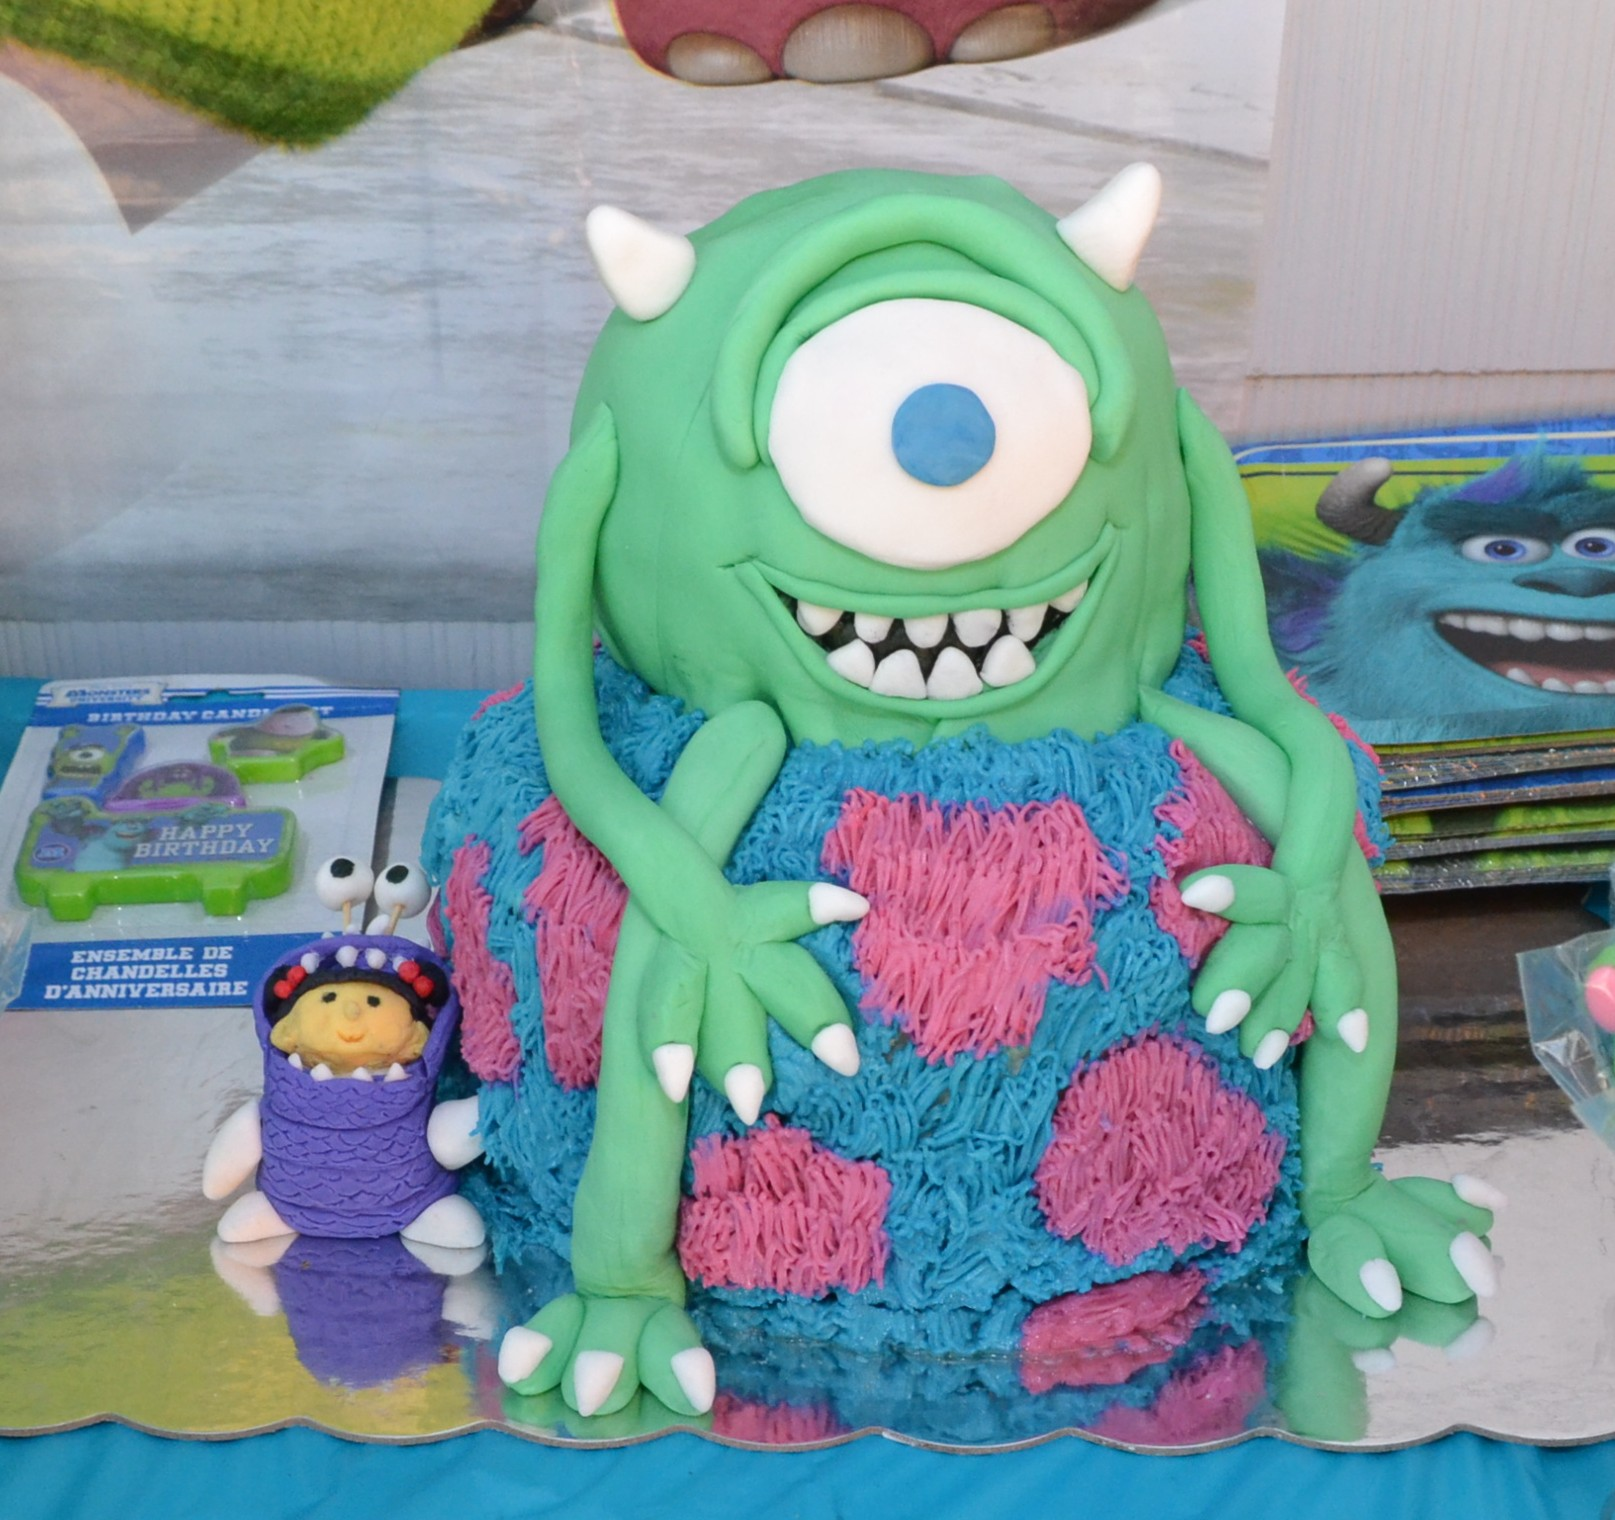 Tremendous Monsters Inc Birthday Cake Do It Yourself Funny Birthday Cards Online Unhofree Goldxyz